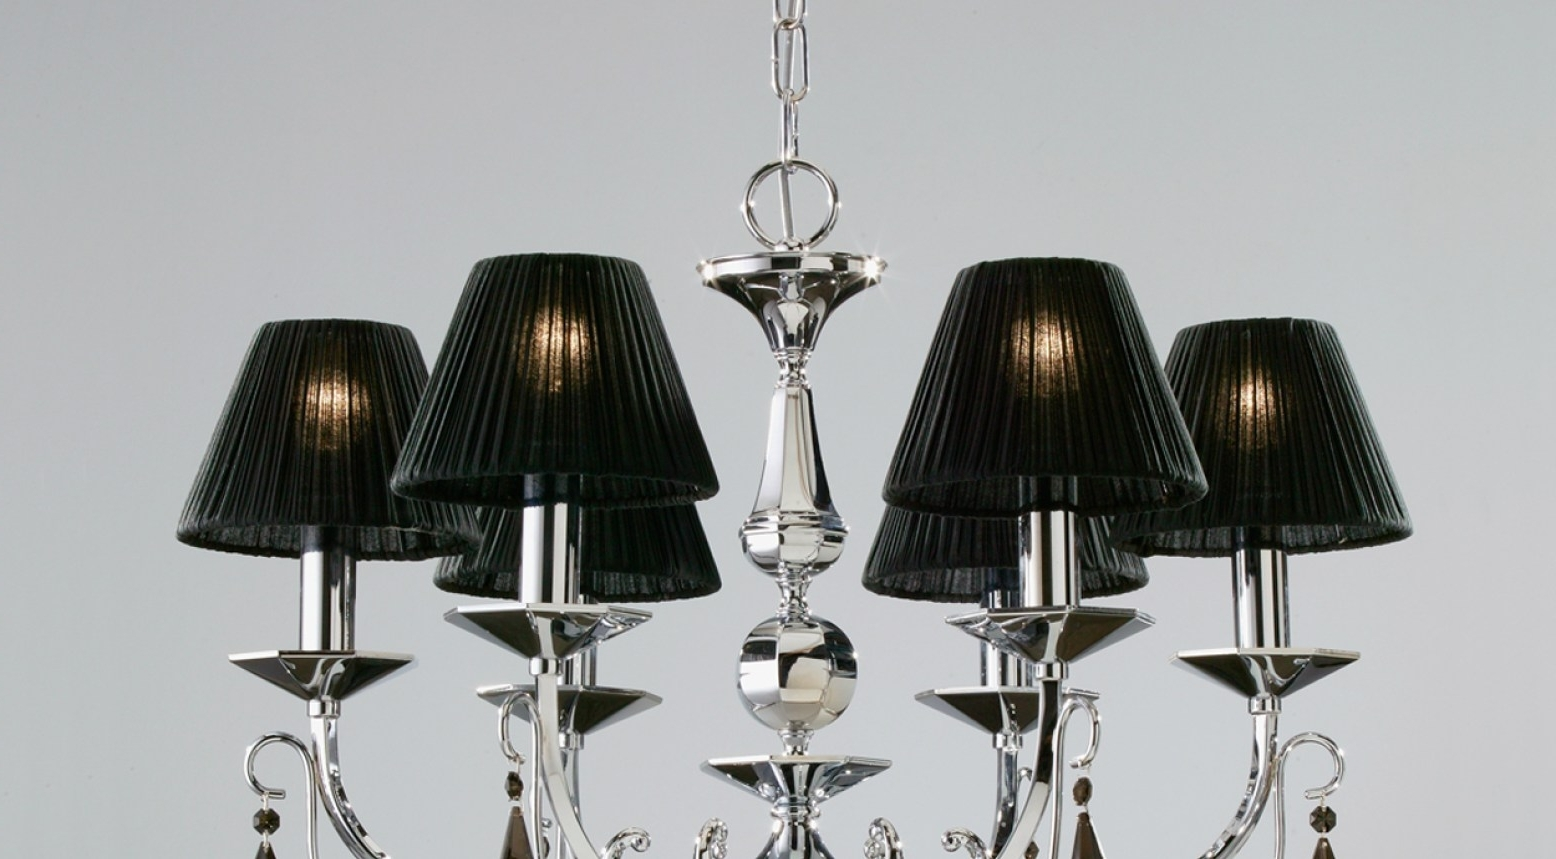 Favorite Chandelier : Shades Black Lampshade With Crystal Beads And Tassels Inside Turquoise Chandelier Lamp Shades (View 8 of 20)